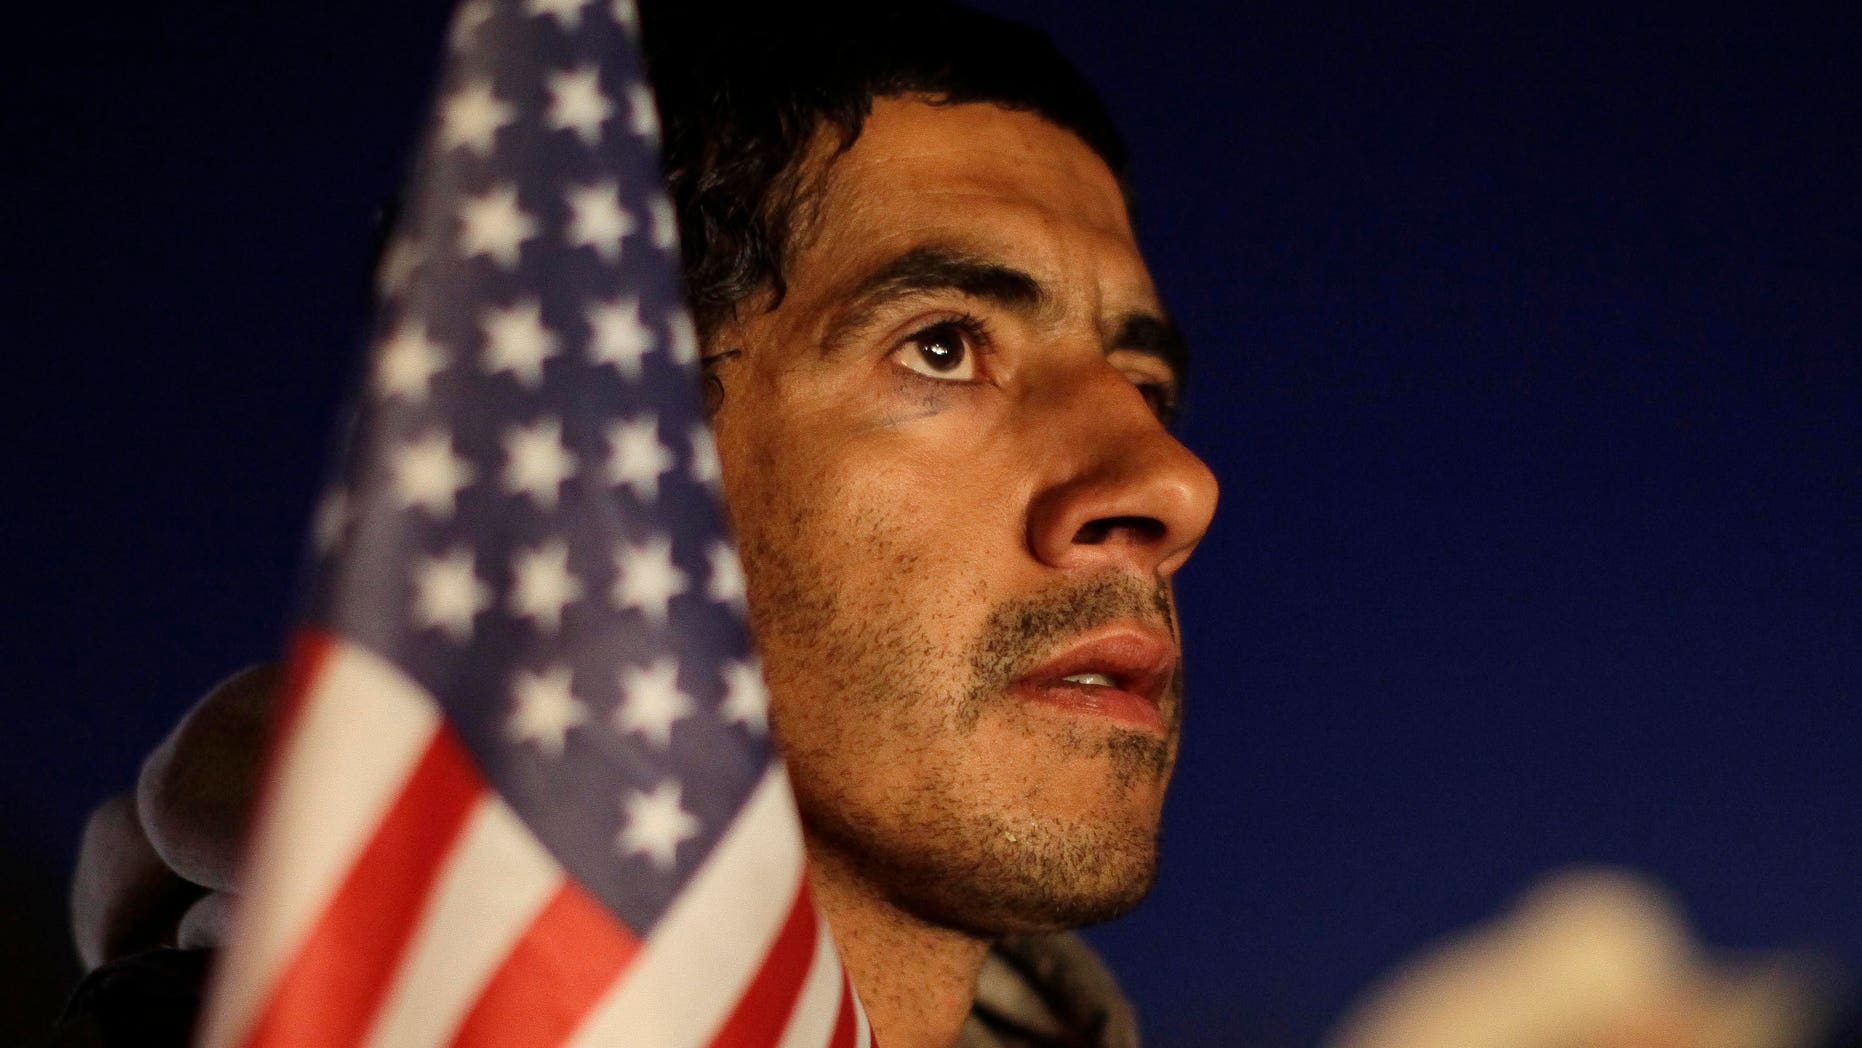 Daniel Moreno, of Elko, Nev., listens to speeches during a rally held by the Tea Party Express Monday, Oct. 18, 2010, in Elko, Nev.